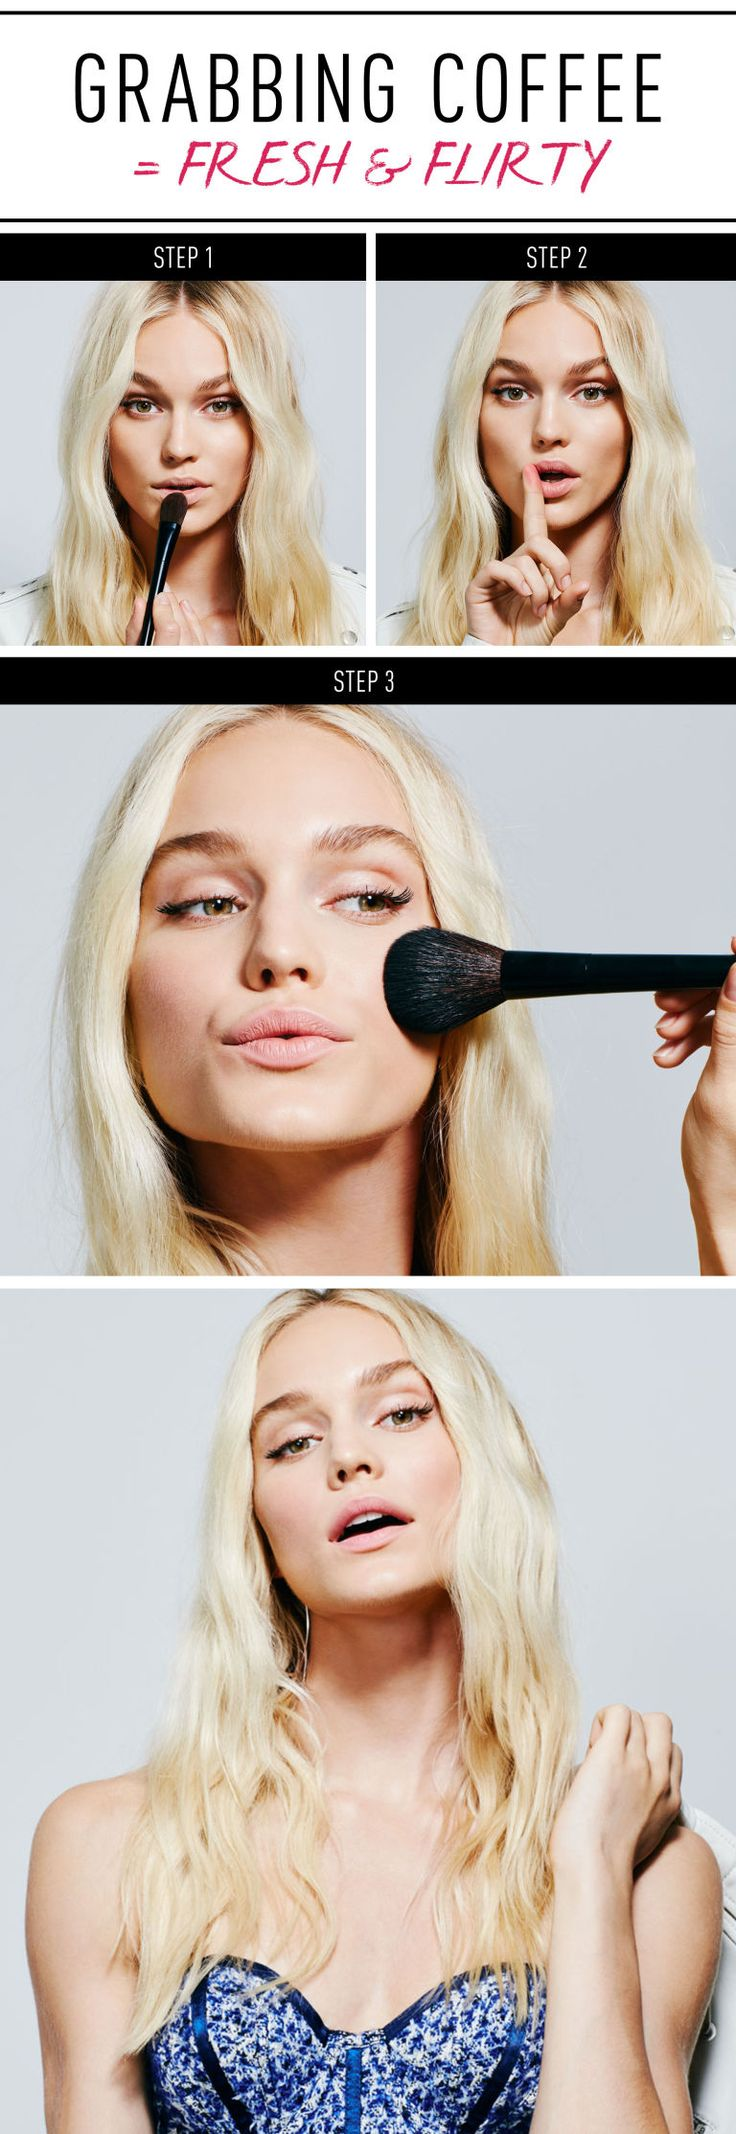 """Grabbing Coffee = Fresh & Flirty Soft pink lips and flushed cheeks read first-date sweet. Step 1: Prime Time Using a foundation brush, sweep liquid foundation, like Avon Ideal Flawless Invisible Coverage Liquid Foundation, all over the face, using what's left across the lips. """"This creates an even tone as a base for the lipstick,"""" says Oquendo. Step 2: Dot & Blot Apply a natural pink lipstick, like Avon Perfectly Matte Lipstick in """"Pure Pink,"""" which delivers a high color payoff that's ..."""